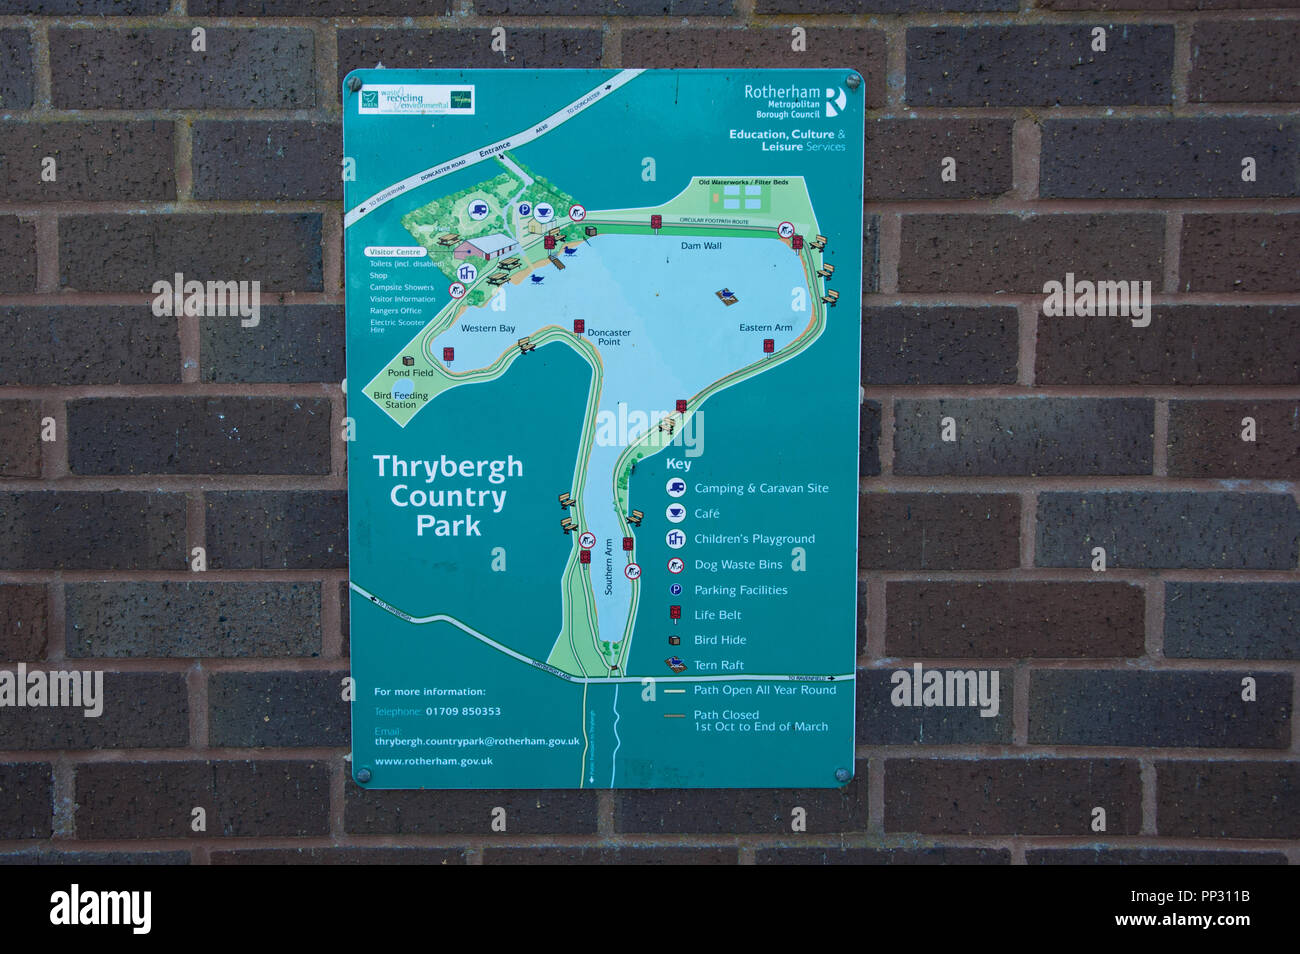 Map and plan on the wall at the entrance to Thryburgh Country Parlk in Rotherham South Yorkshire. - Stock Image